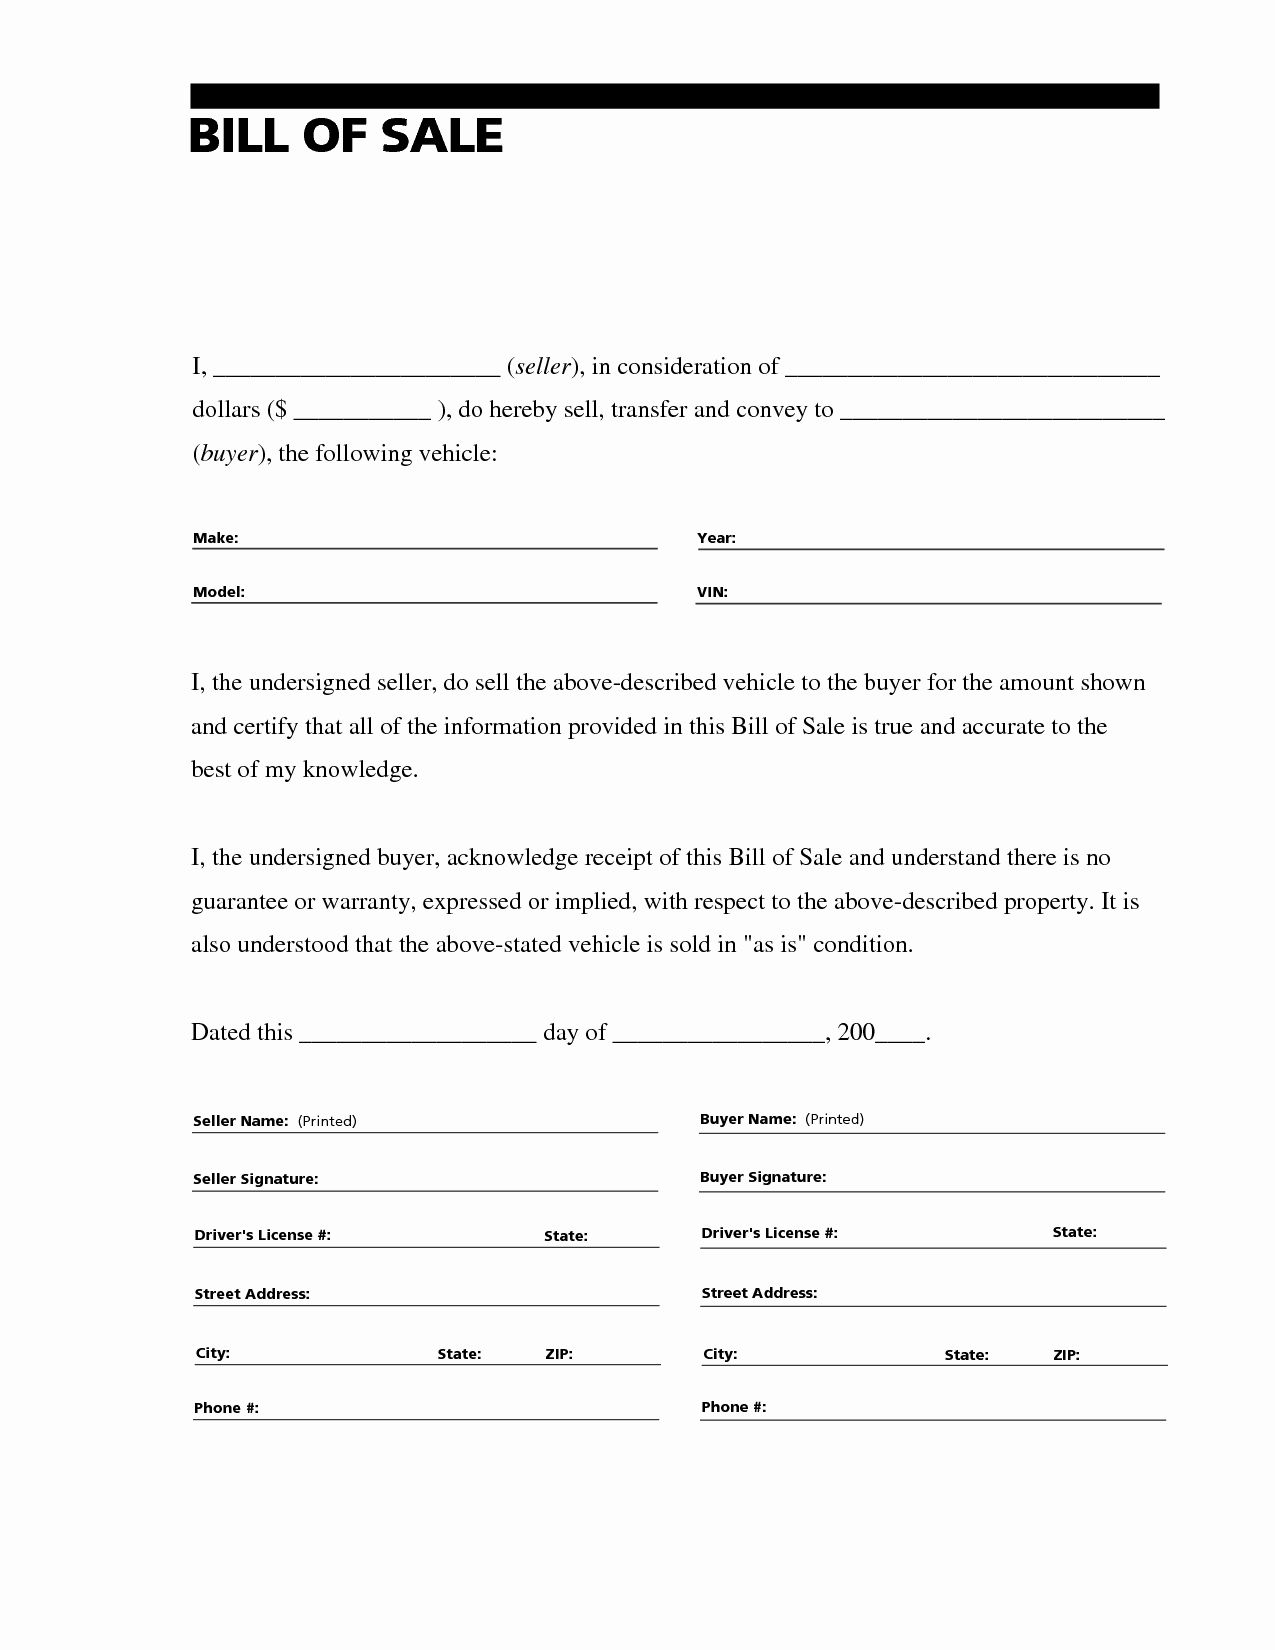 Bill Of Sale Form Example Beautiful Printable Sample Bill Of Sale Templates Form Forms And Template In 20 Bill Of Sale Template Bill Of Sale Car Sales Template Bill of sale printable document